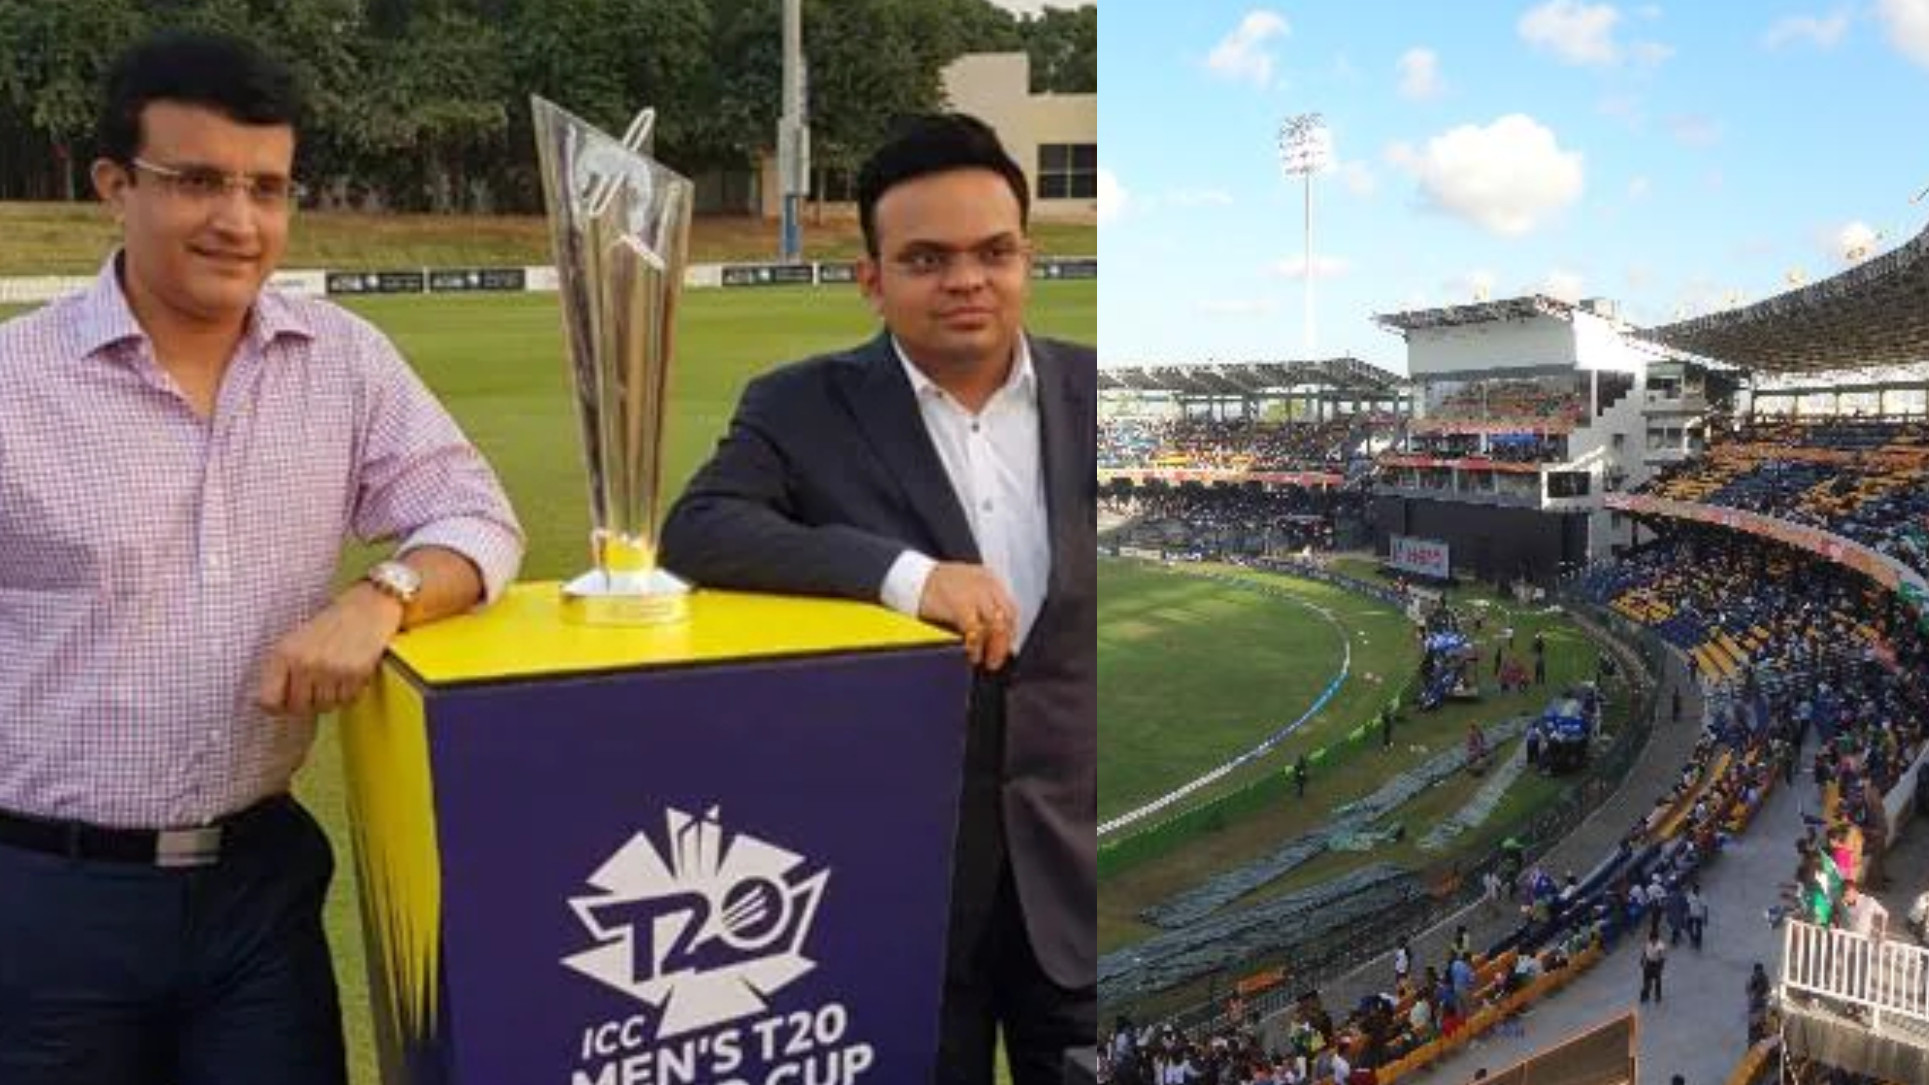 Sri Lanka in running to host T20 World Cup 2021 after BCCI-SLC talks - Report